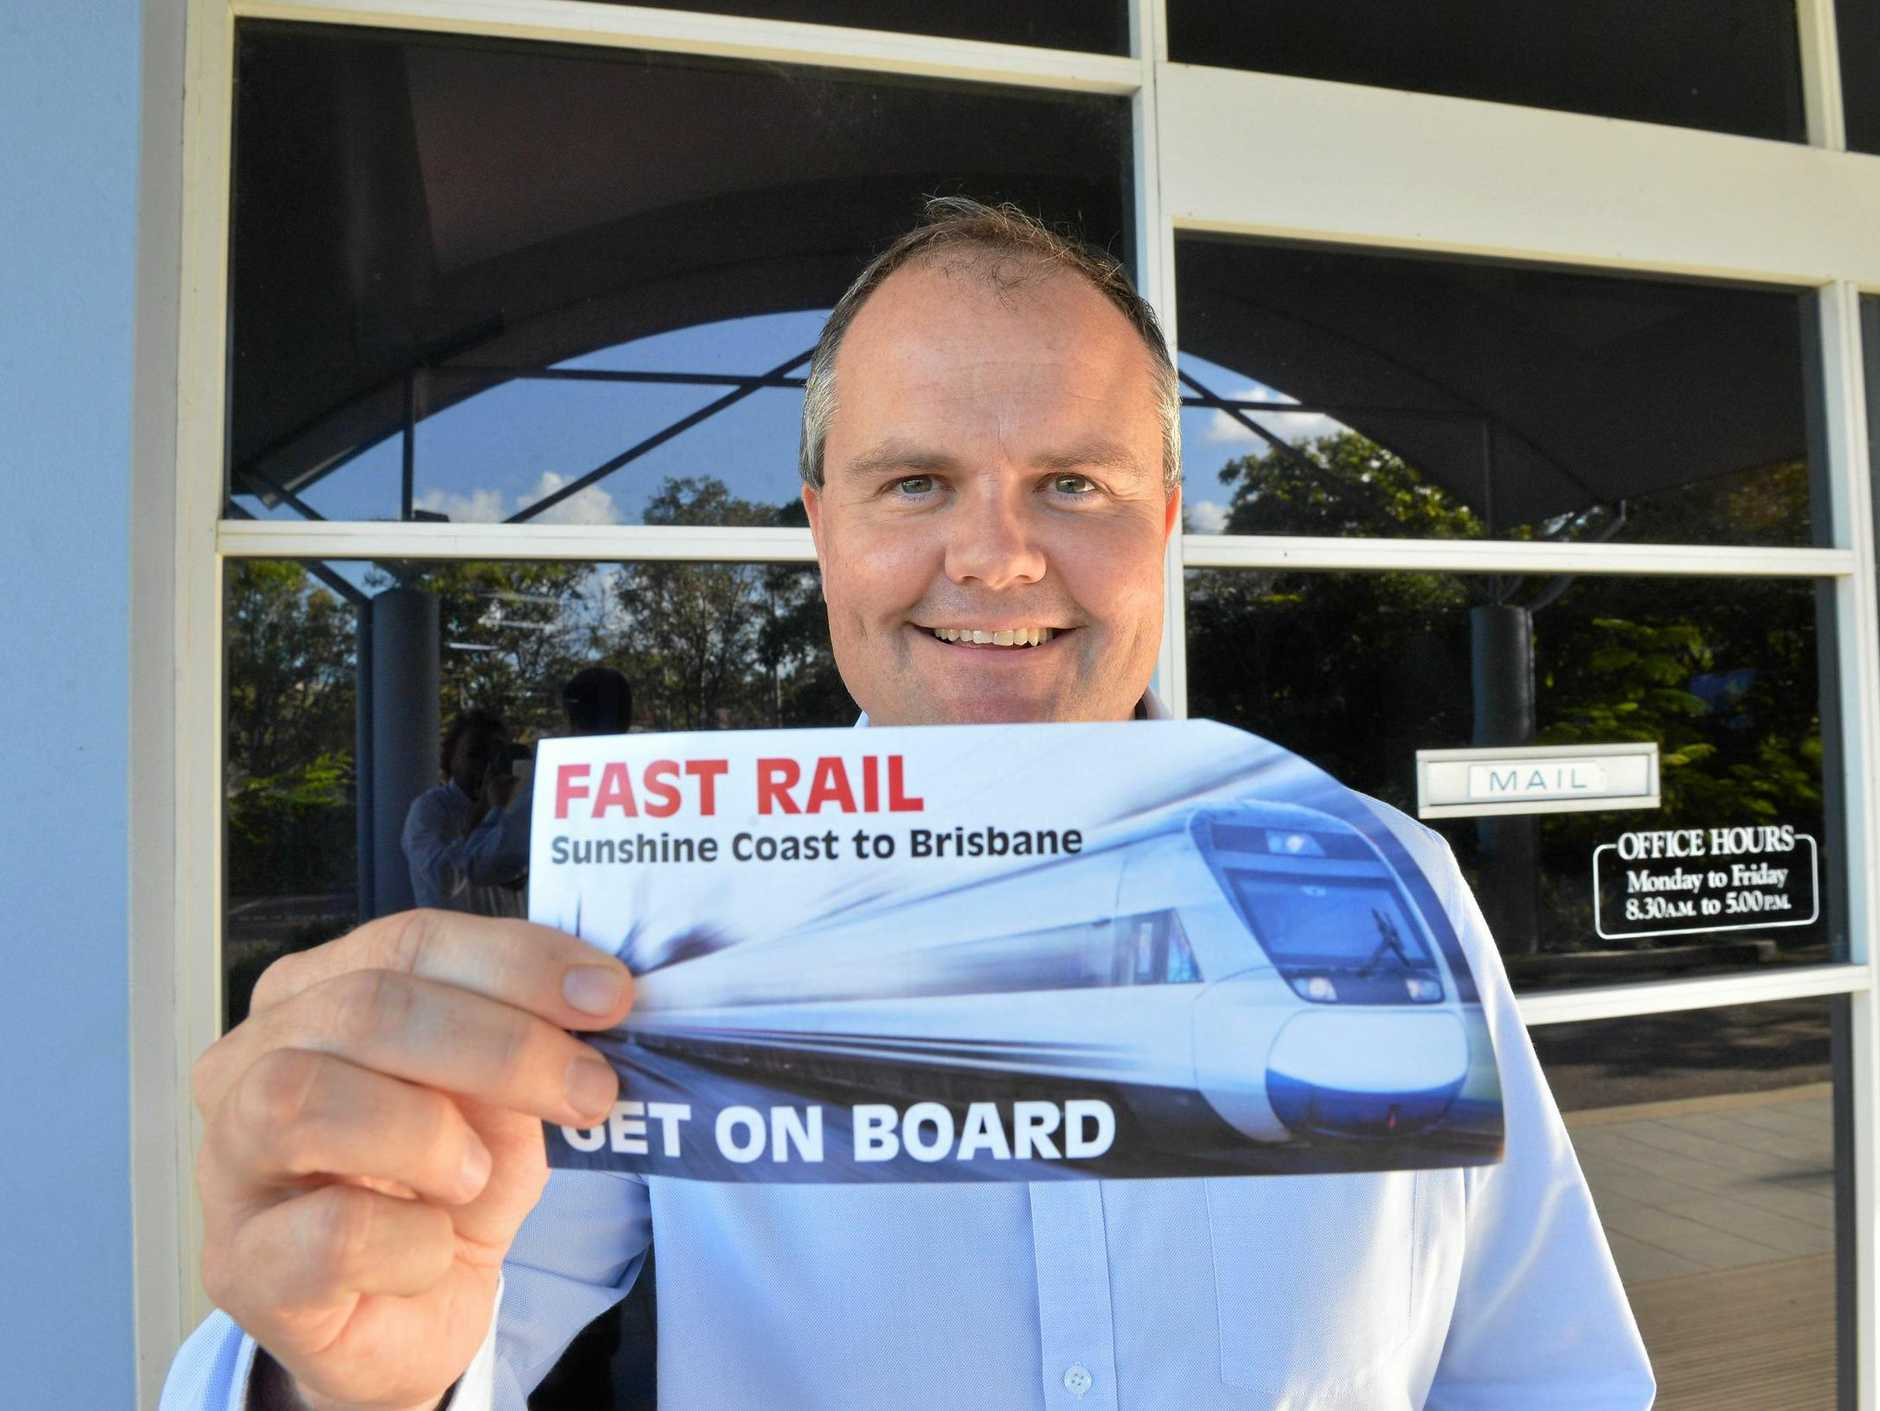 KEY: Federal Member for Fairfax Ted O'Brien says fast rail could unlock potential in infrastructure like Sunshine Coast Stadium.